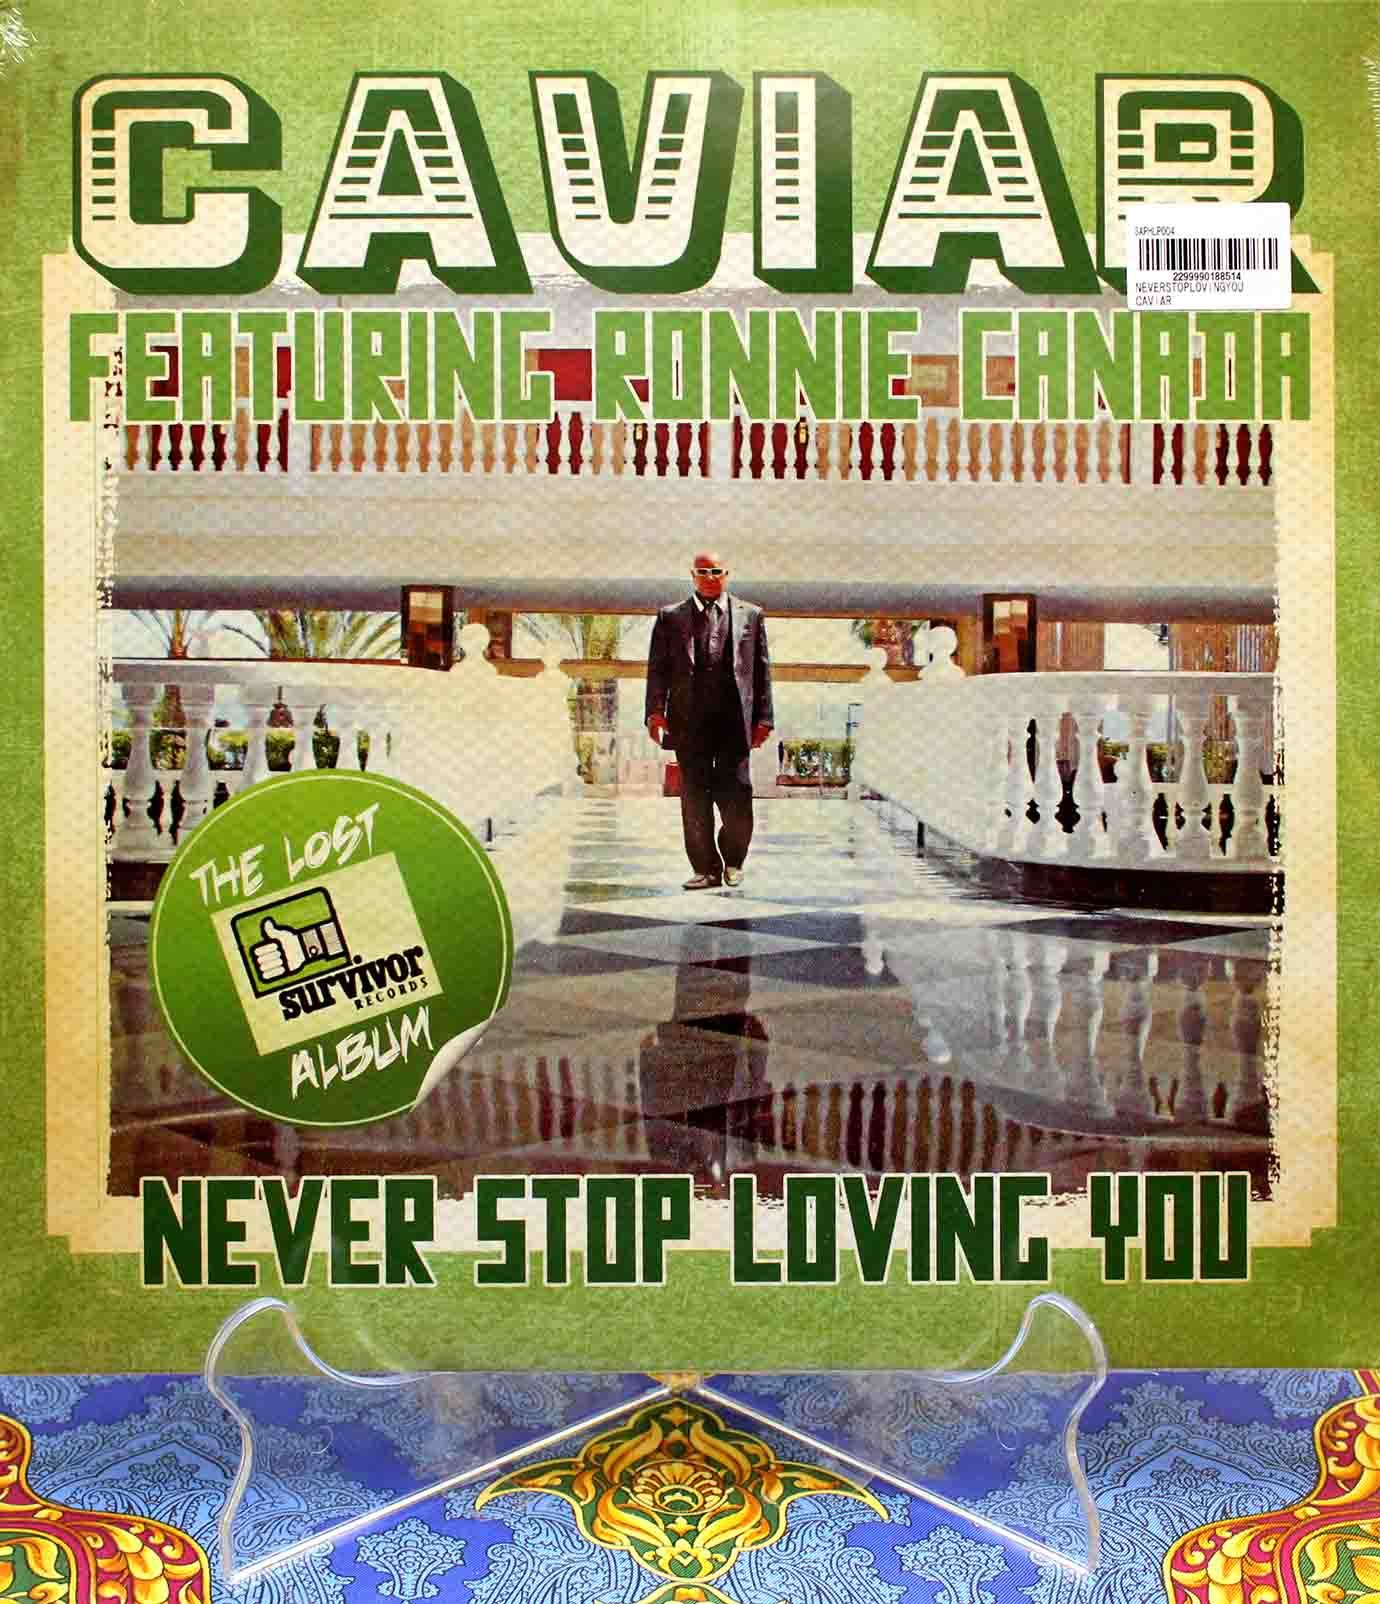 Caviar Never Stop Loving You LP 01